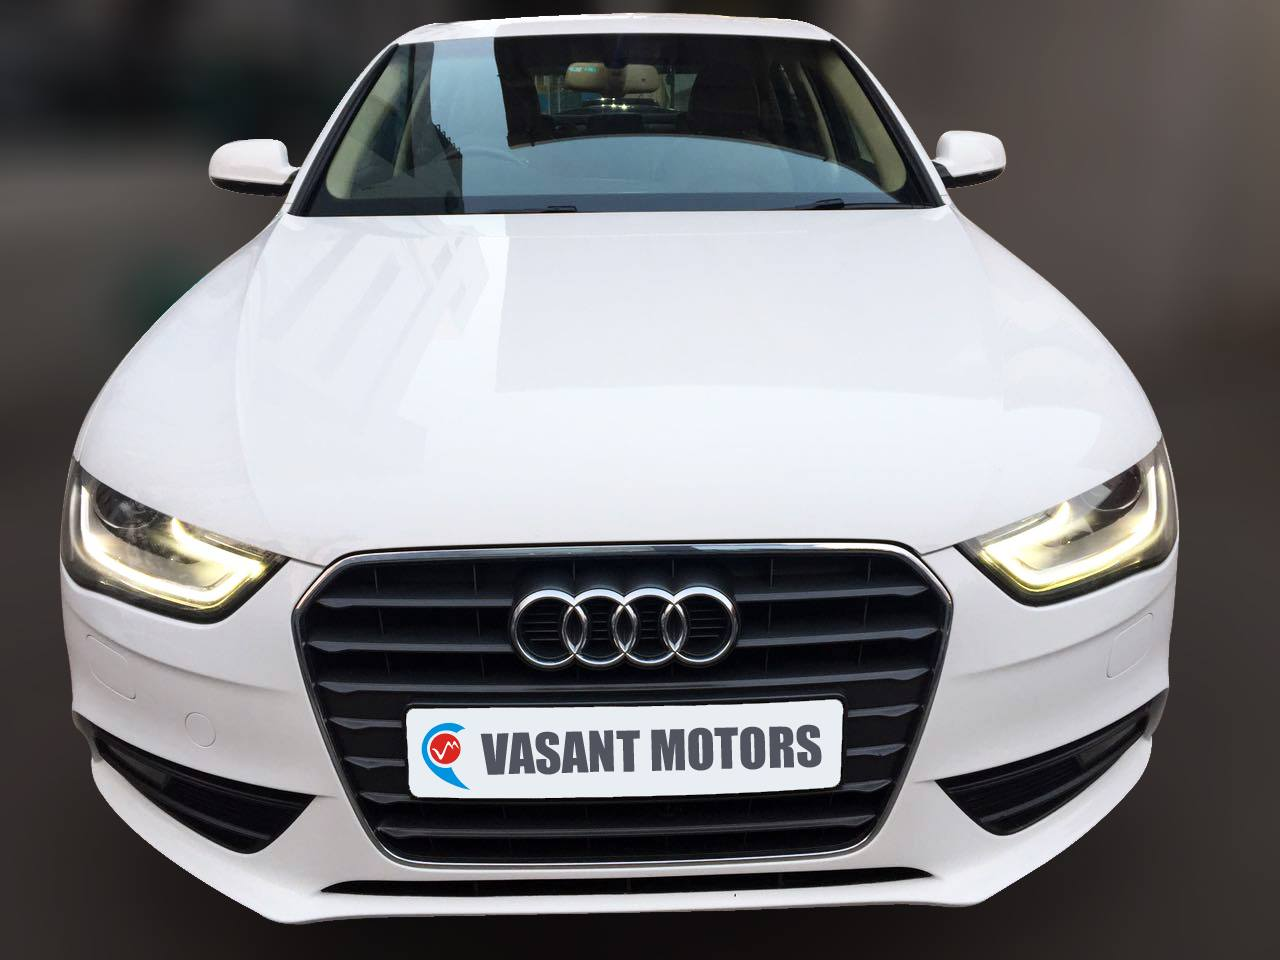 AUDI A4 2.0 TDI ( WHITE COLOR, DIESEL), 2013 model done only 52, 000kms in absolute mint condition. For further info call 7569696666.